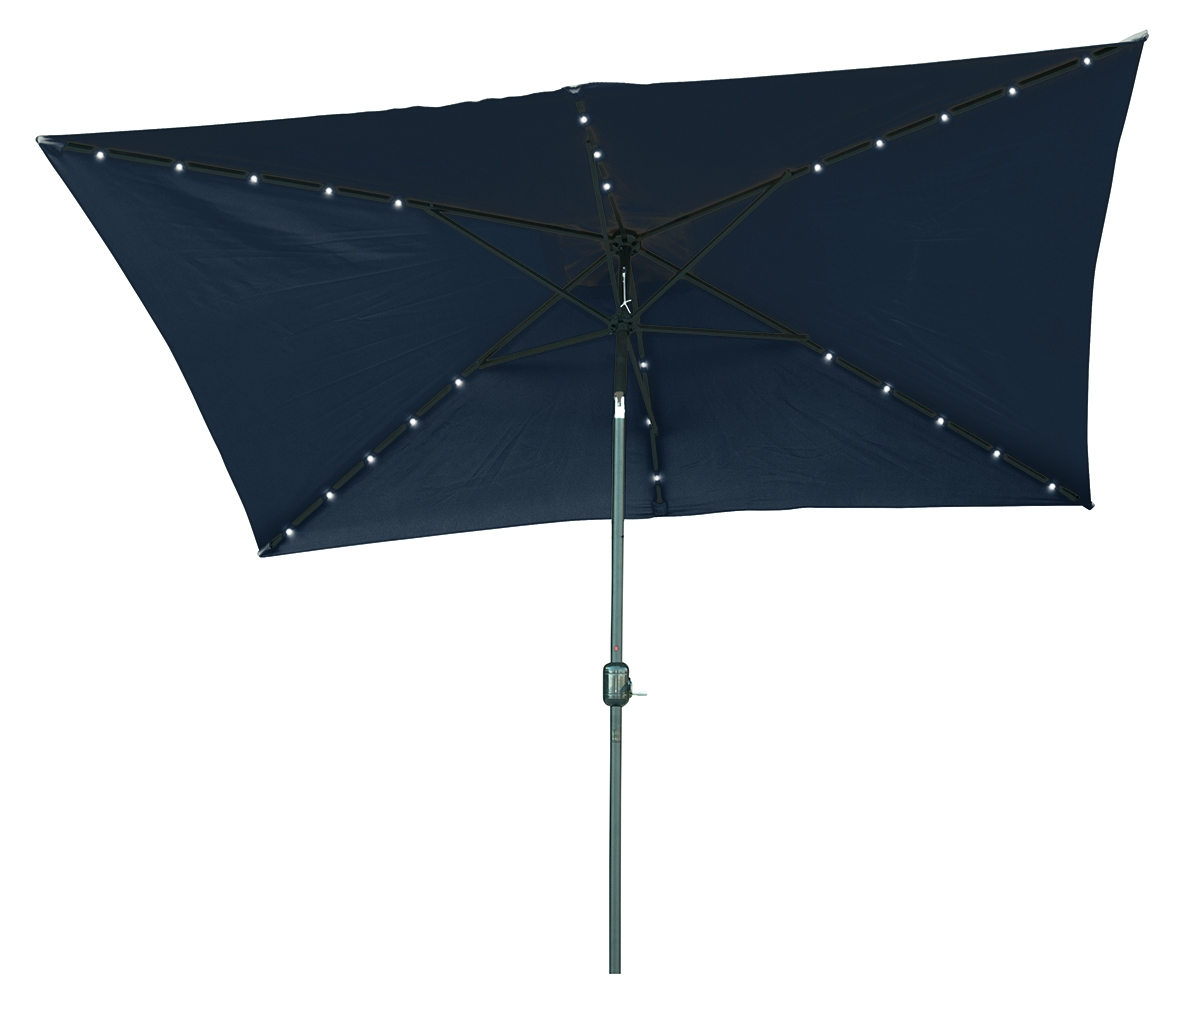 10u0027 X 6.5u0027 Rectangular Solar Powered LED Lighted Patio Umbrella By  Trademark Innovations (Blue)